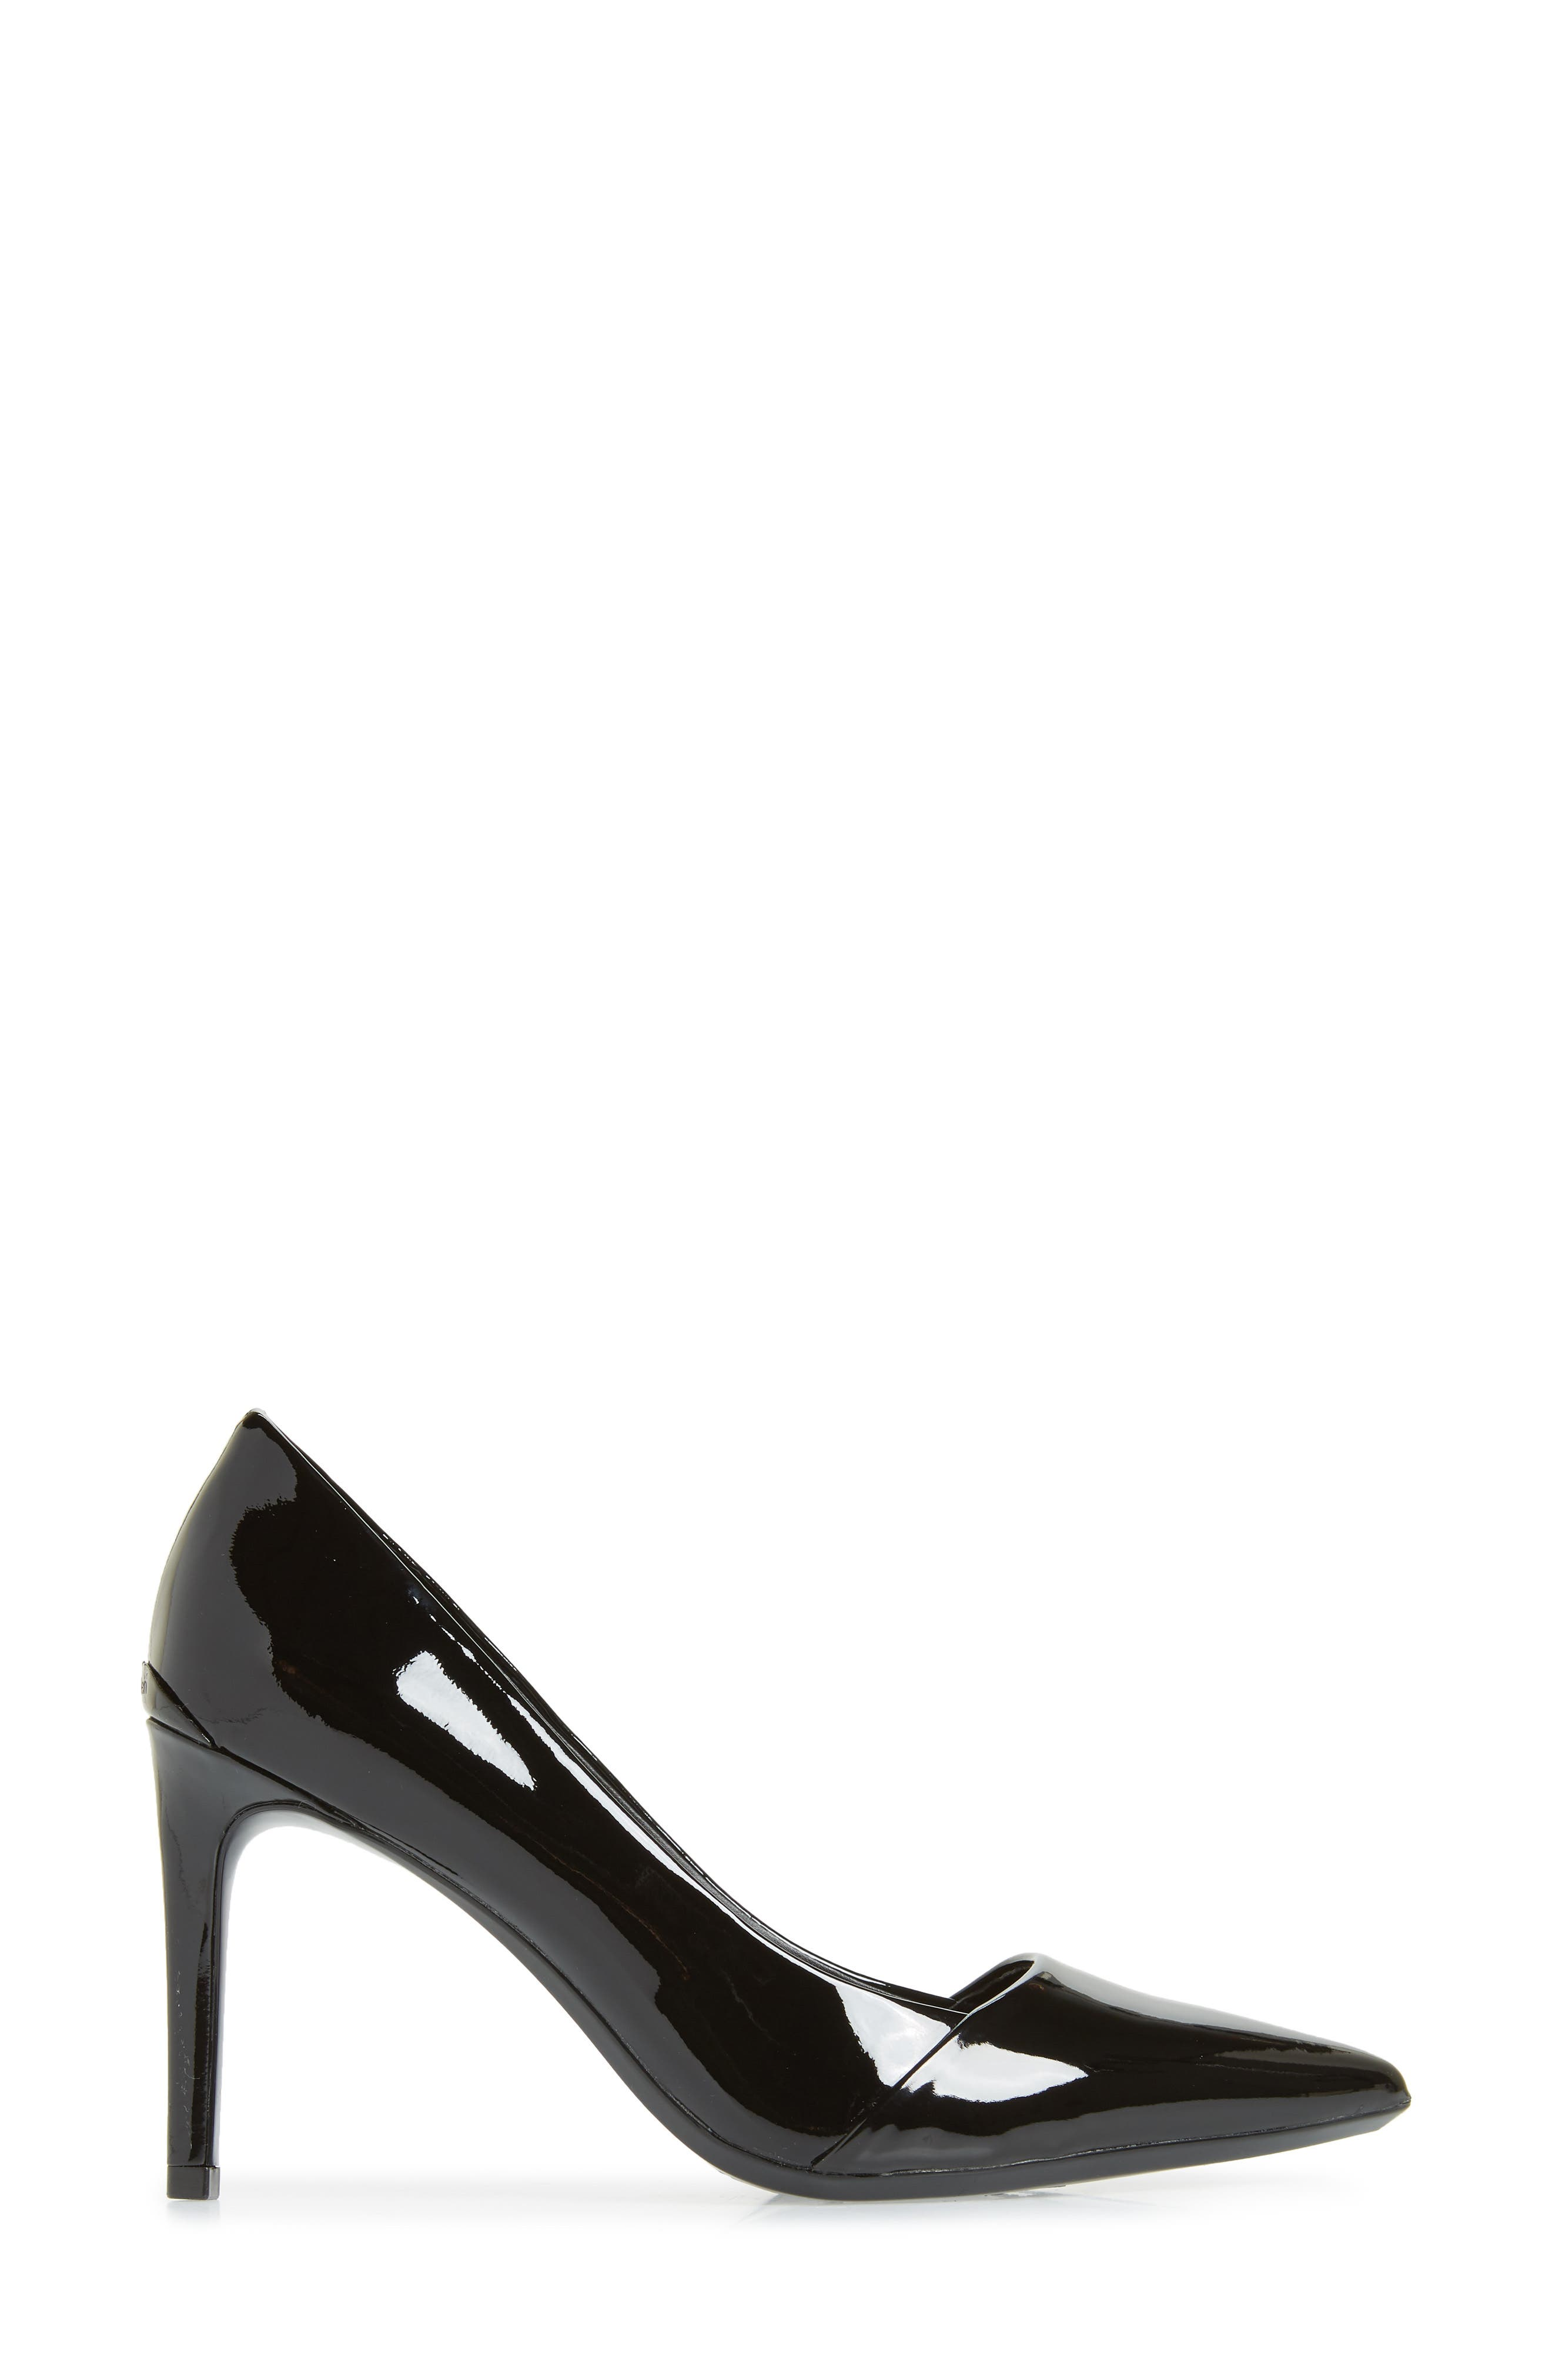 CALVIN KLEIN, Roslyn Pointed Toe Pump, Alternate thumbnail 3, color, BLACK PATENT LEATHER